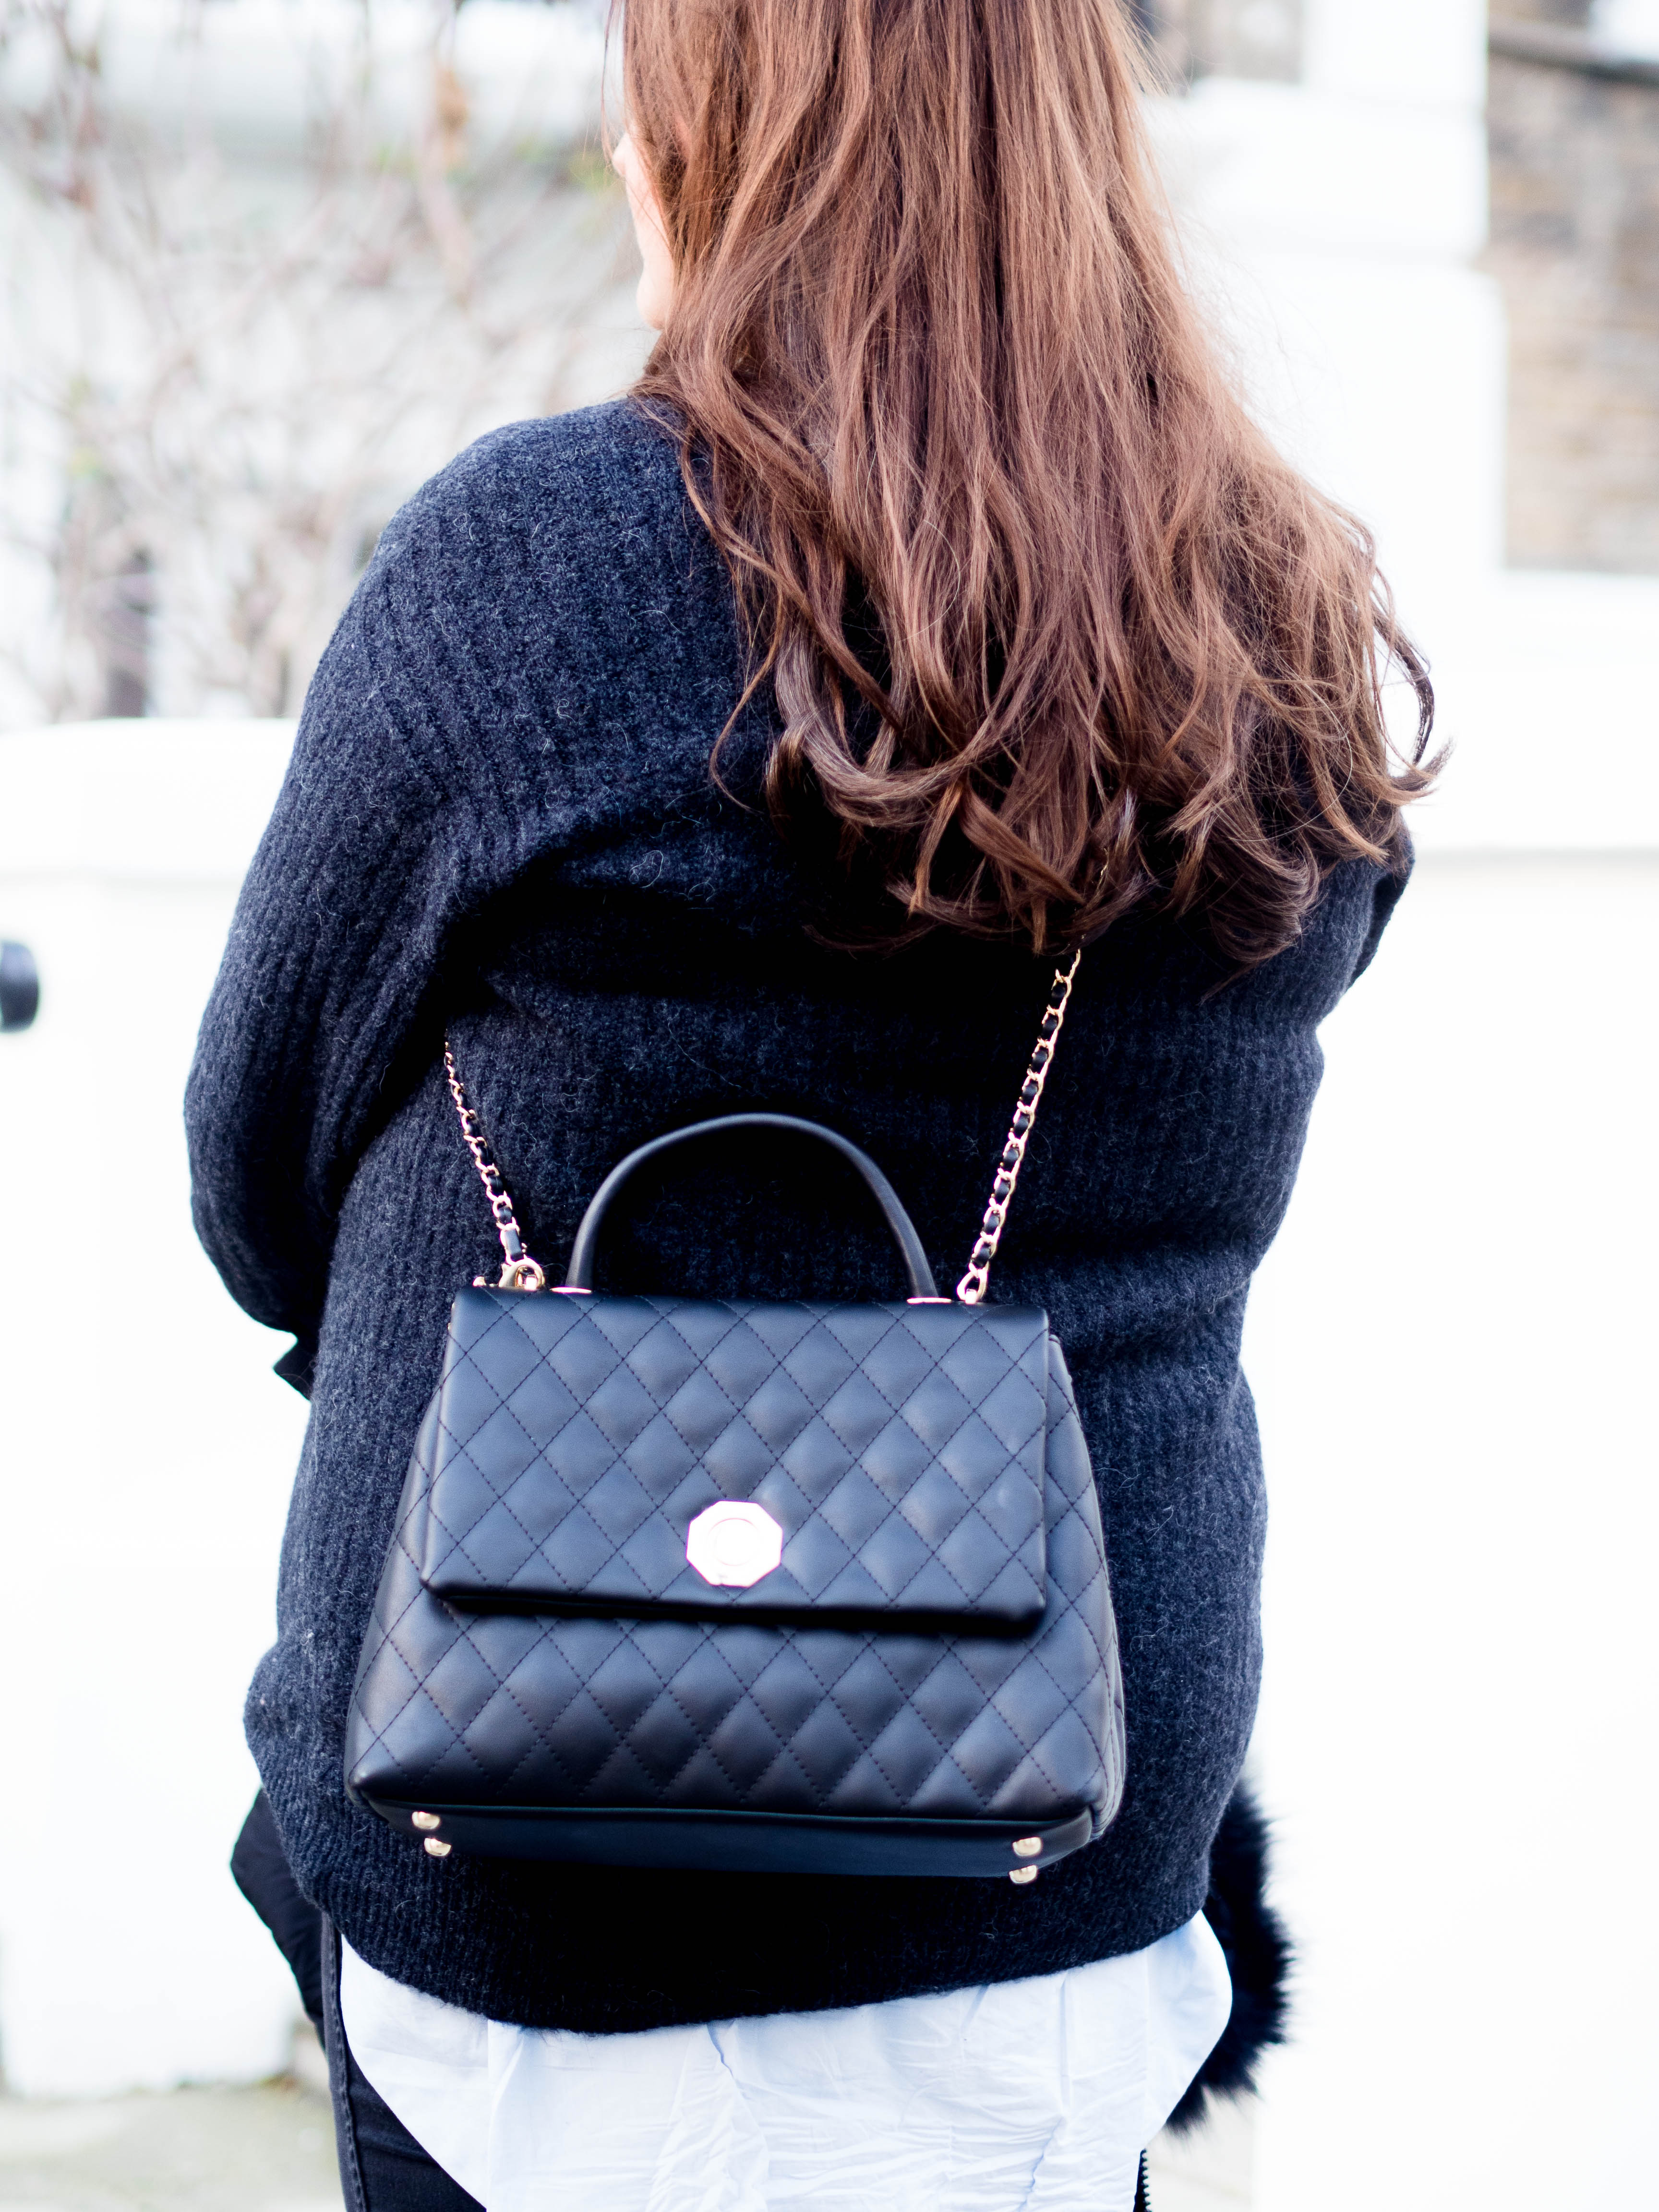 THE bag - Chanel dupe